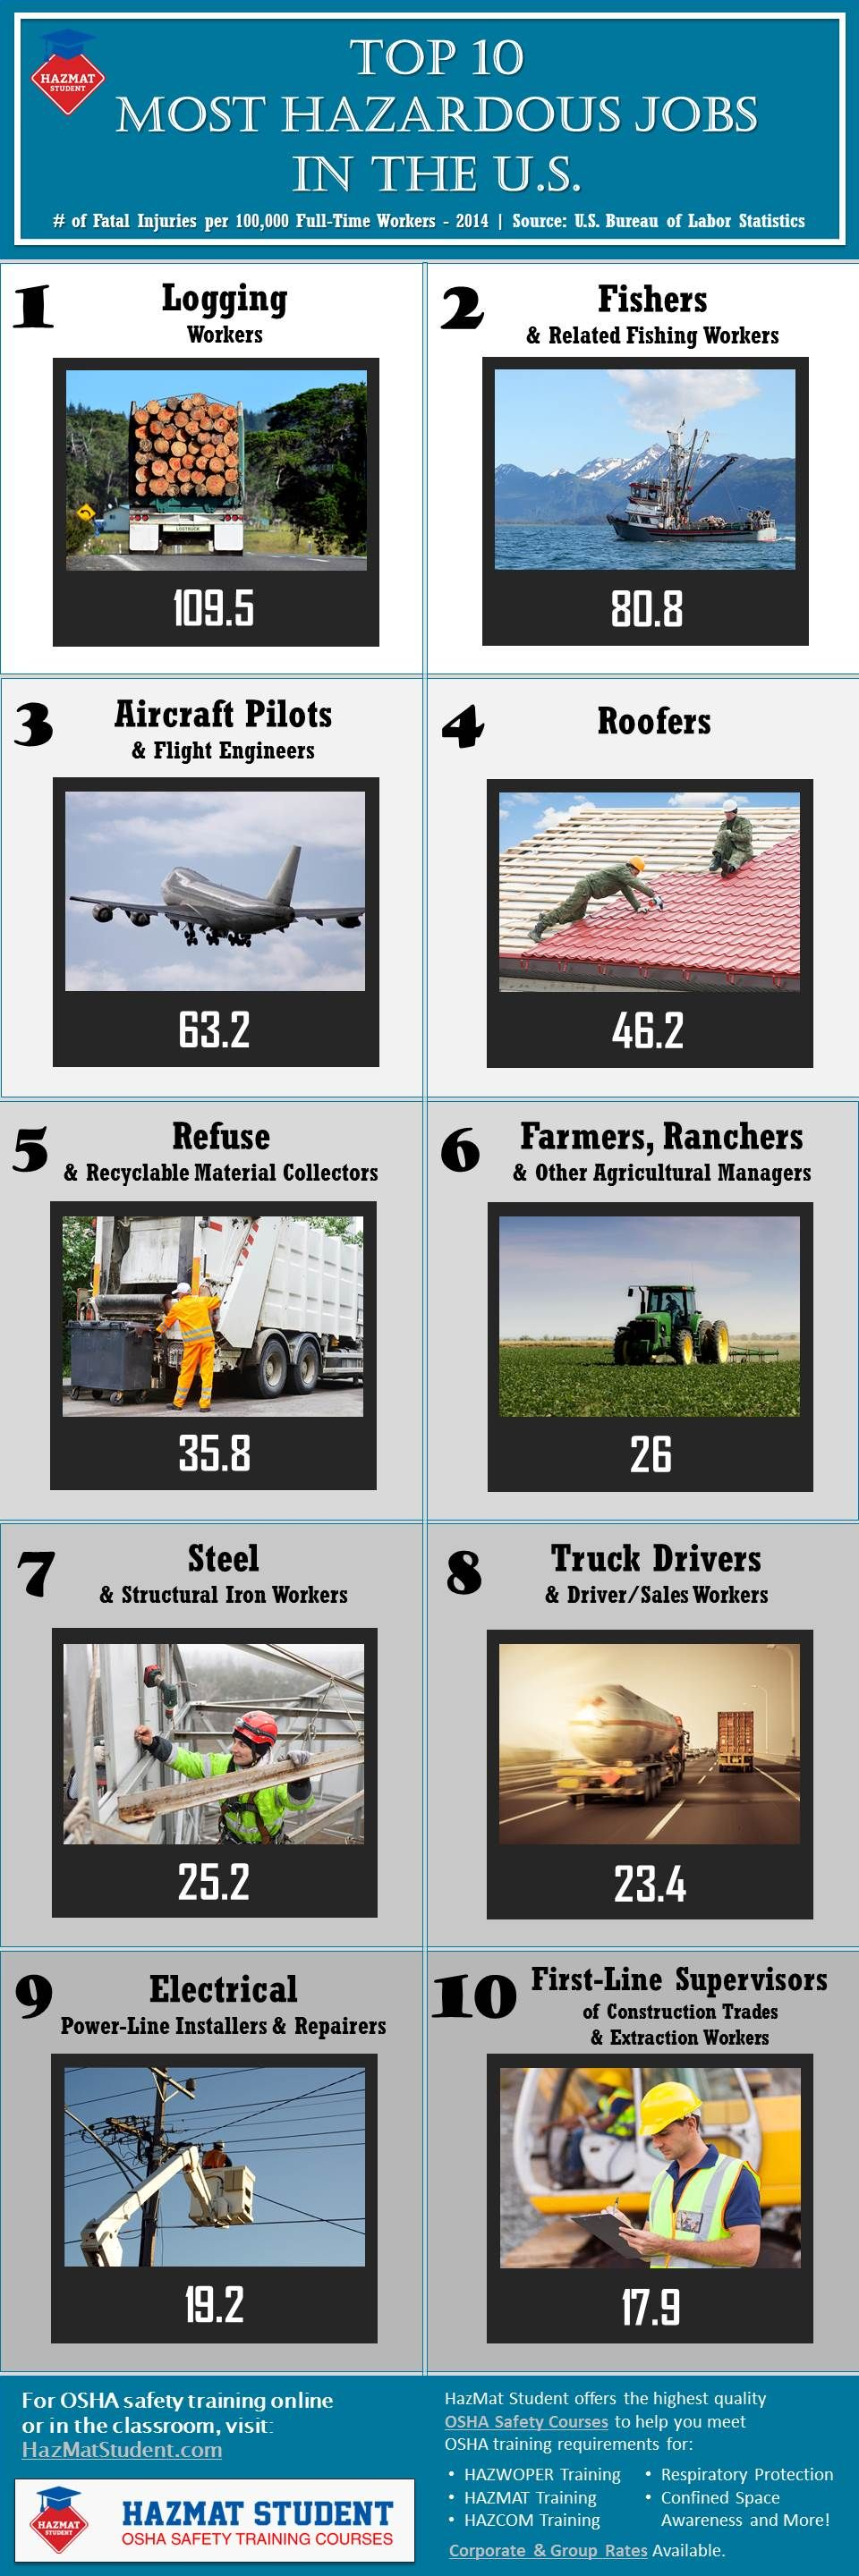 Top 10 Most Hazardous Jobs (With images) Safety